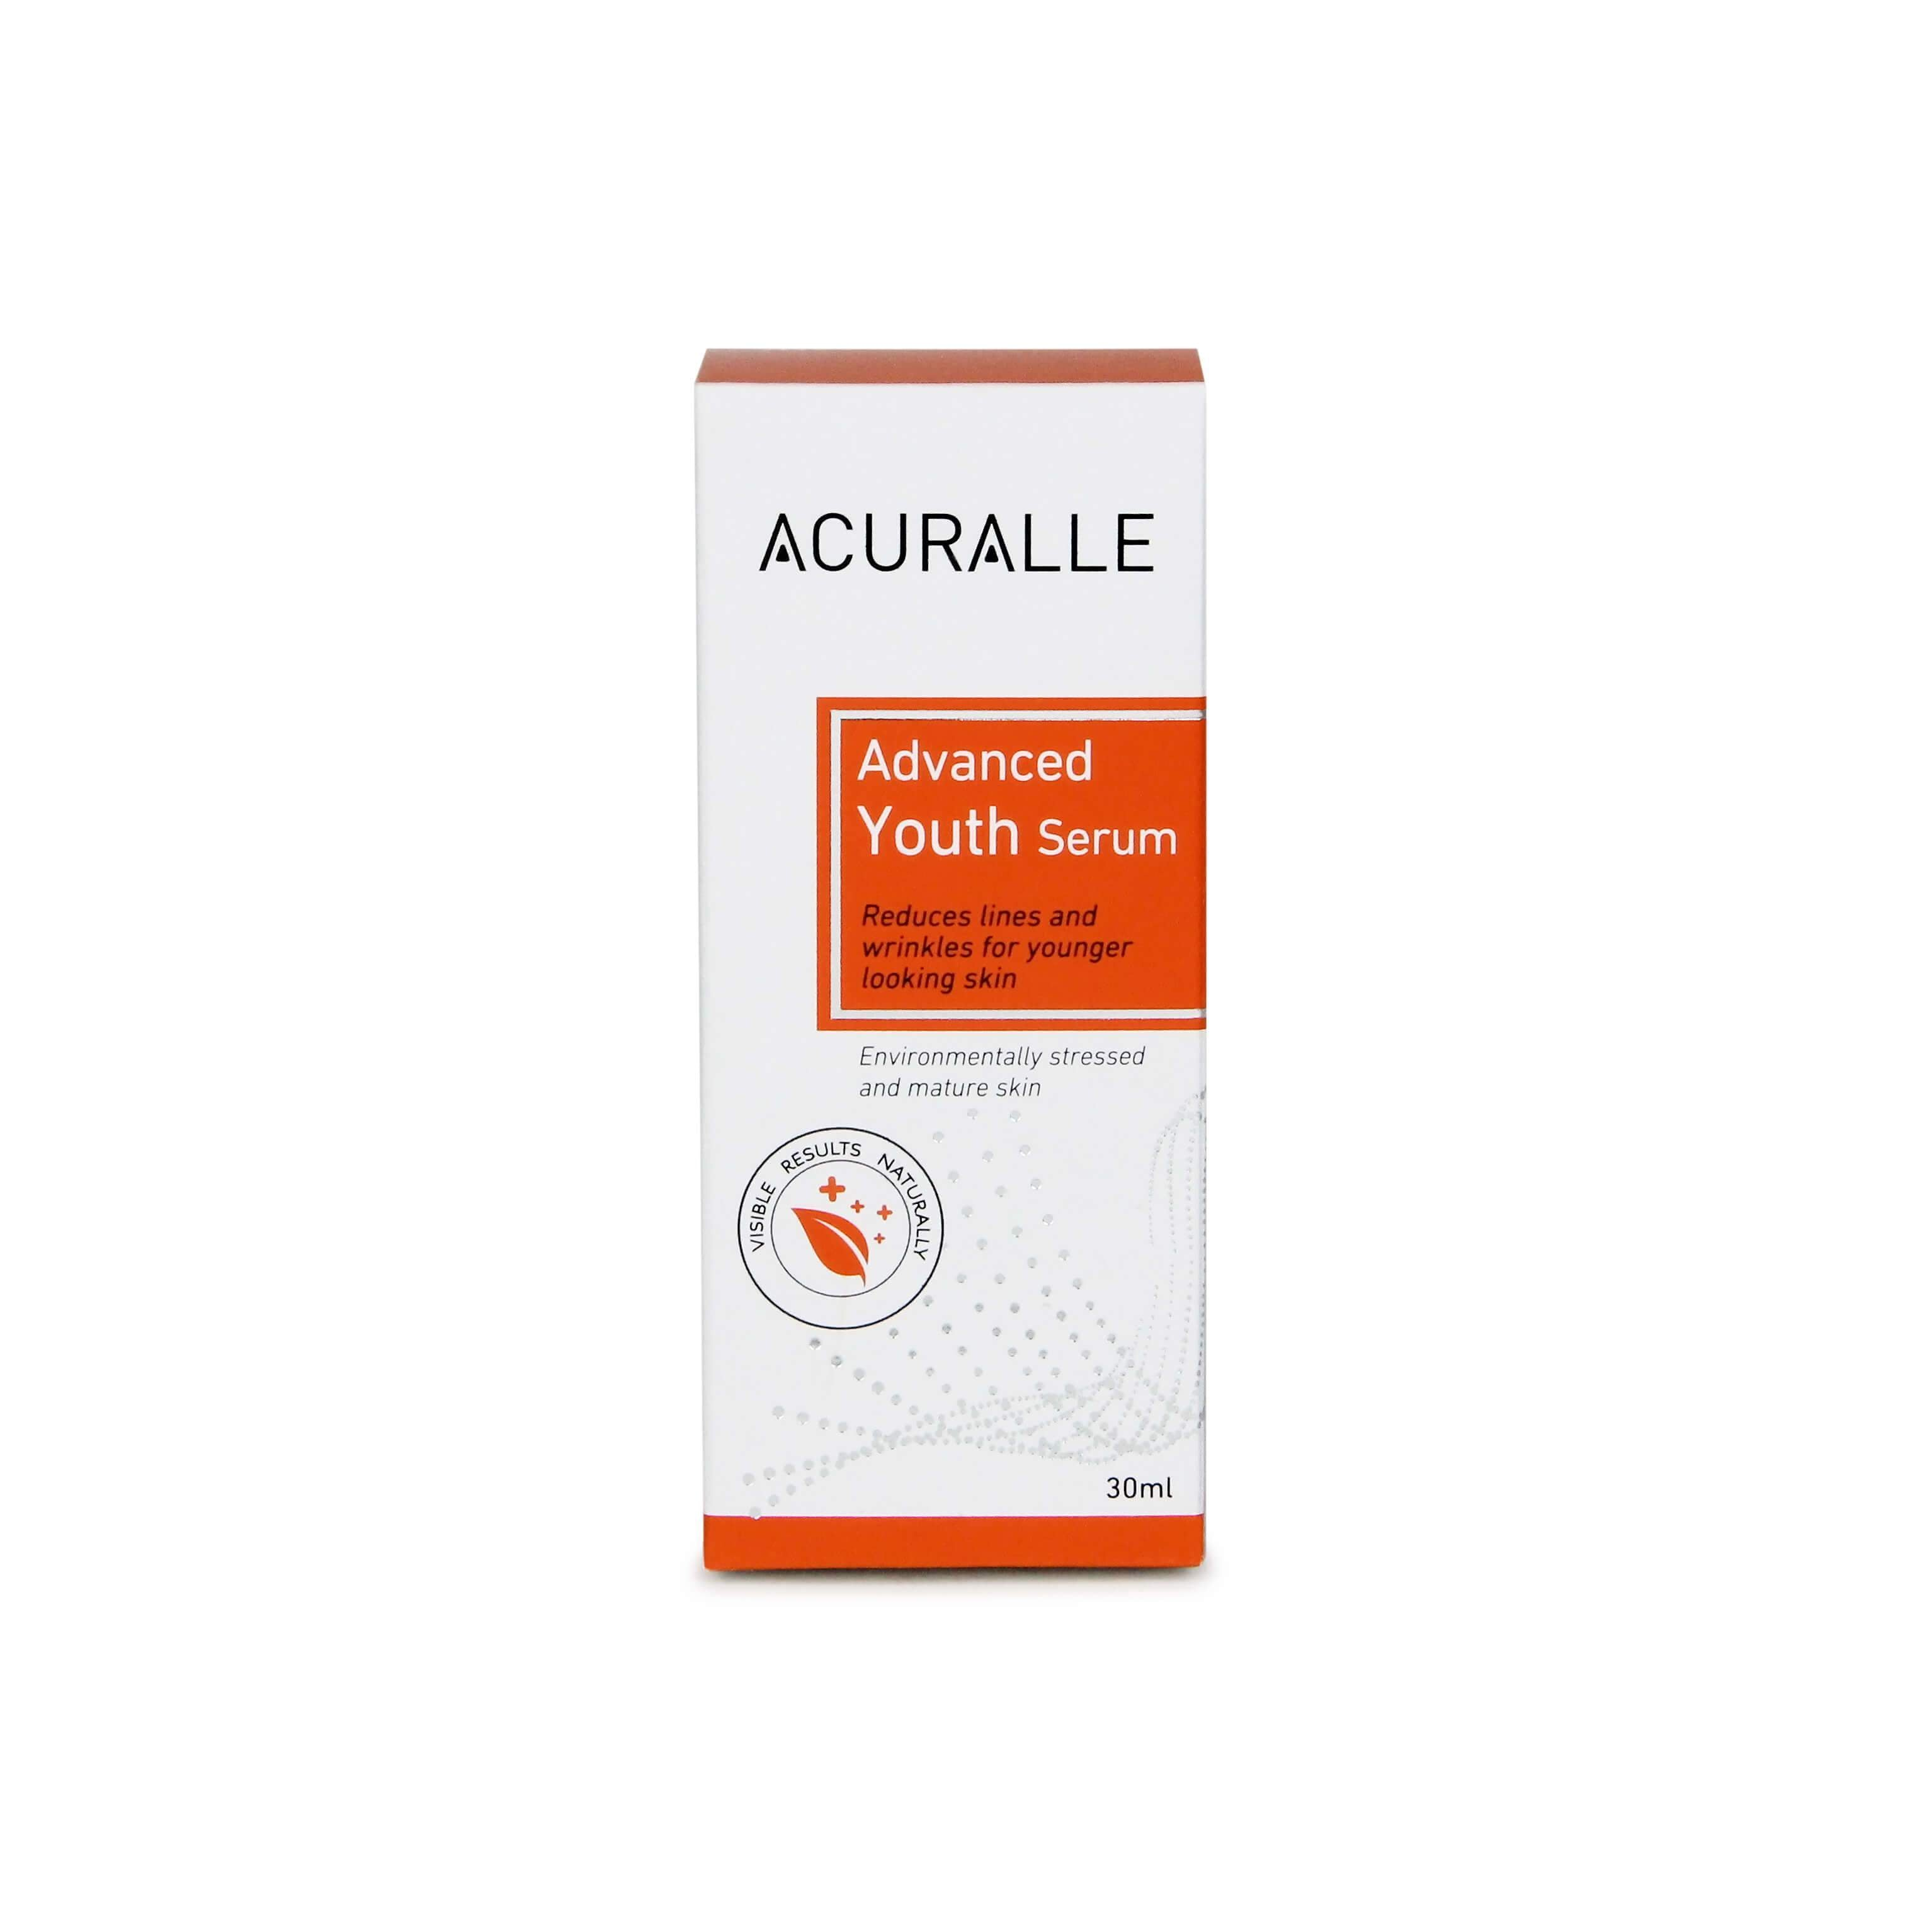 Acuralle Advanced Youth Serum